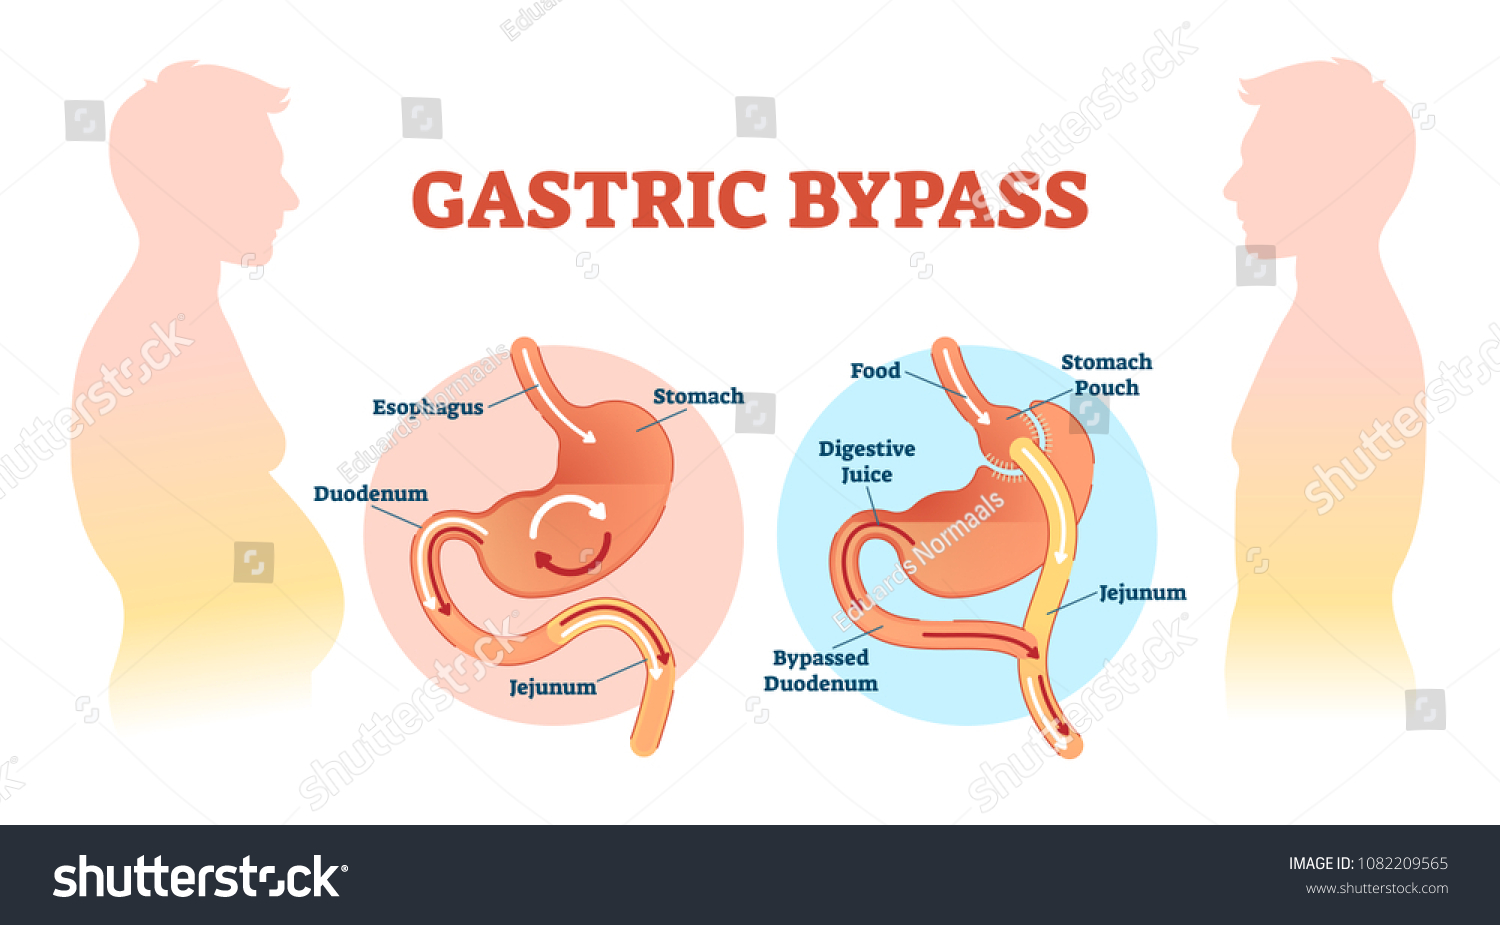 Gastric Bypass Medical Surgery Procedure Vector Stock Vektorgrafik